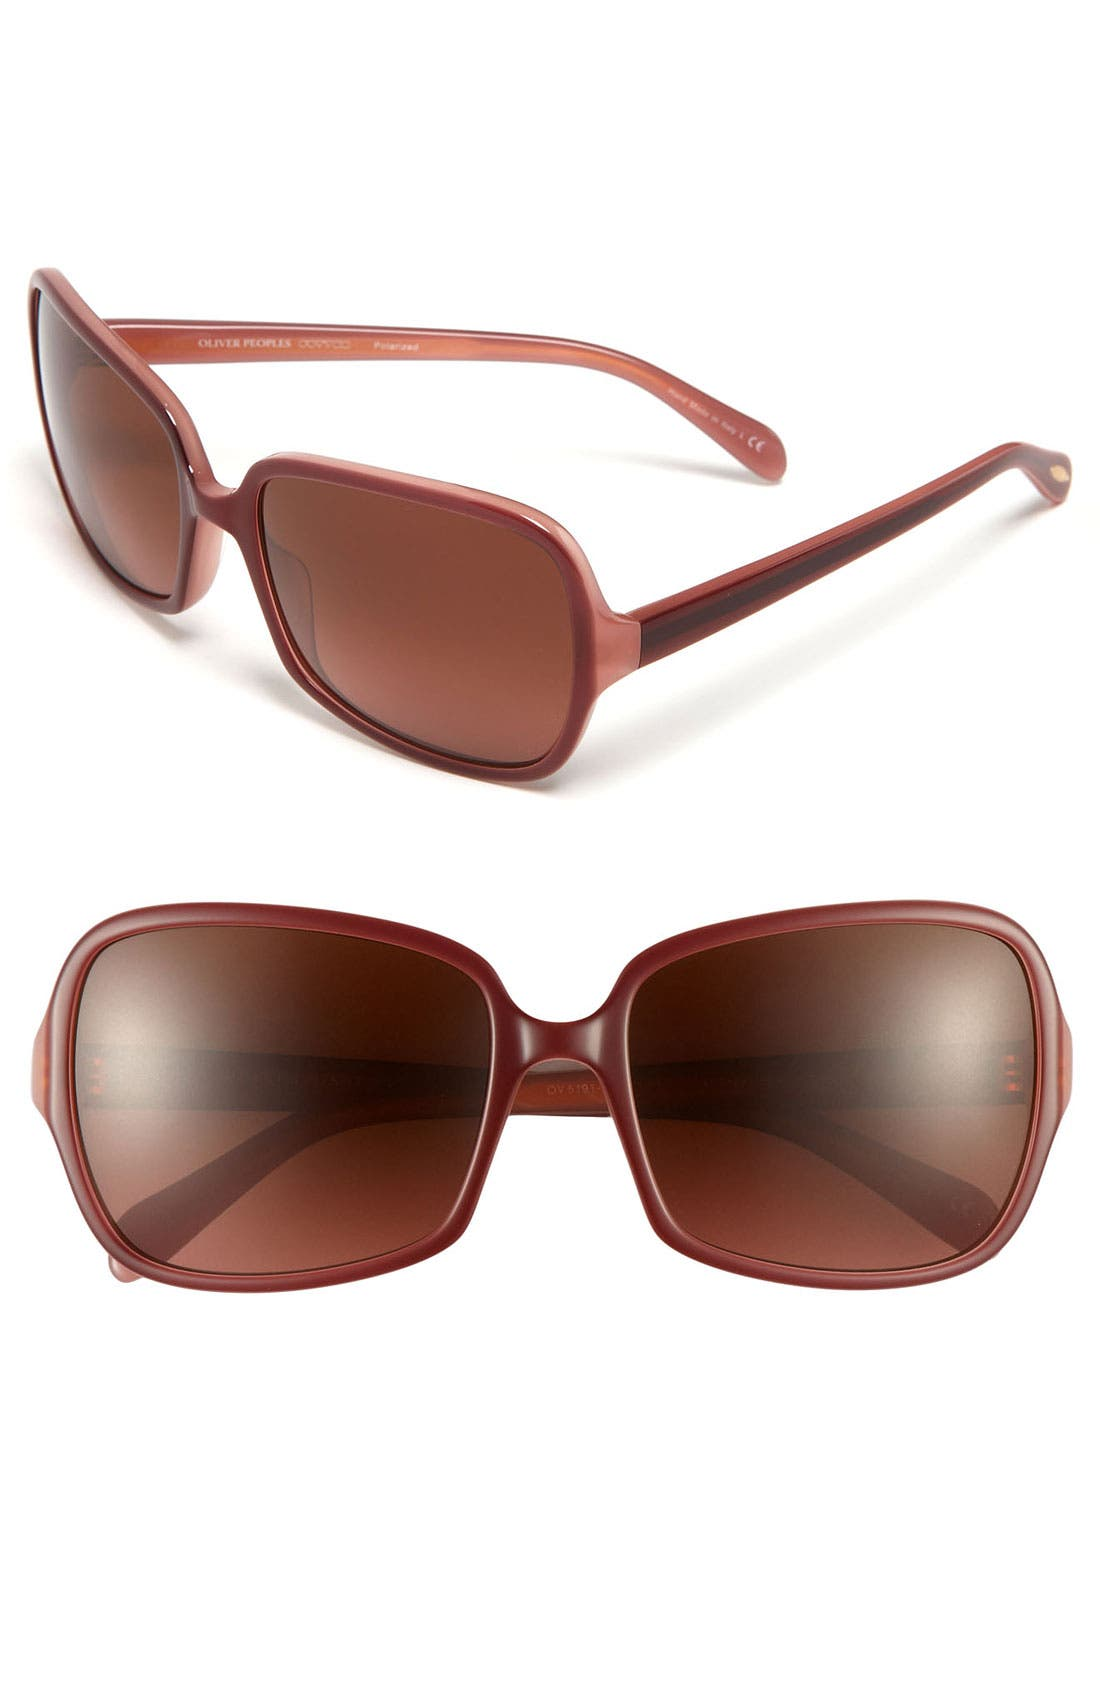 Alternate Image 1 Selected - Oliver Peoples 'Francesca' Polarized Sunglasses